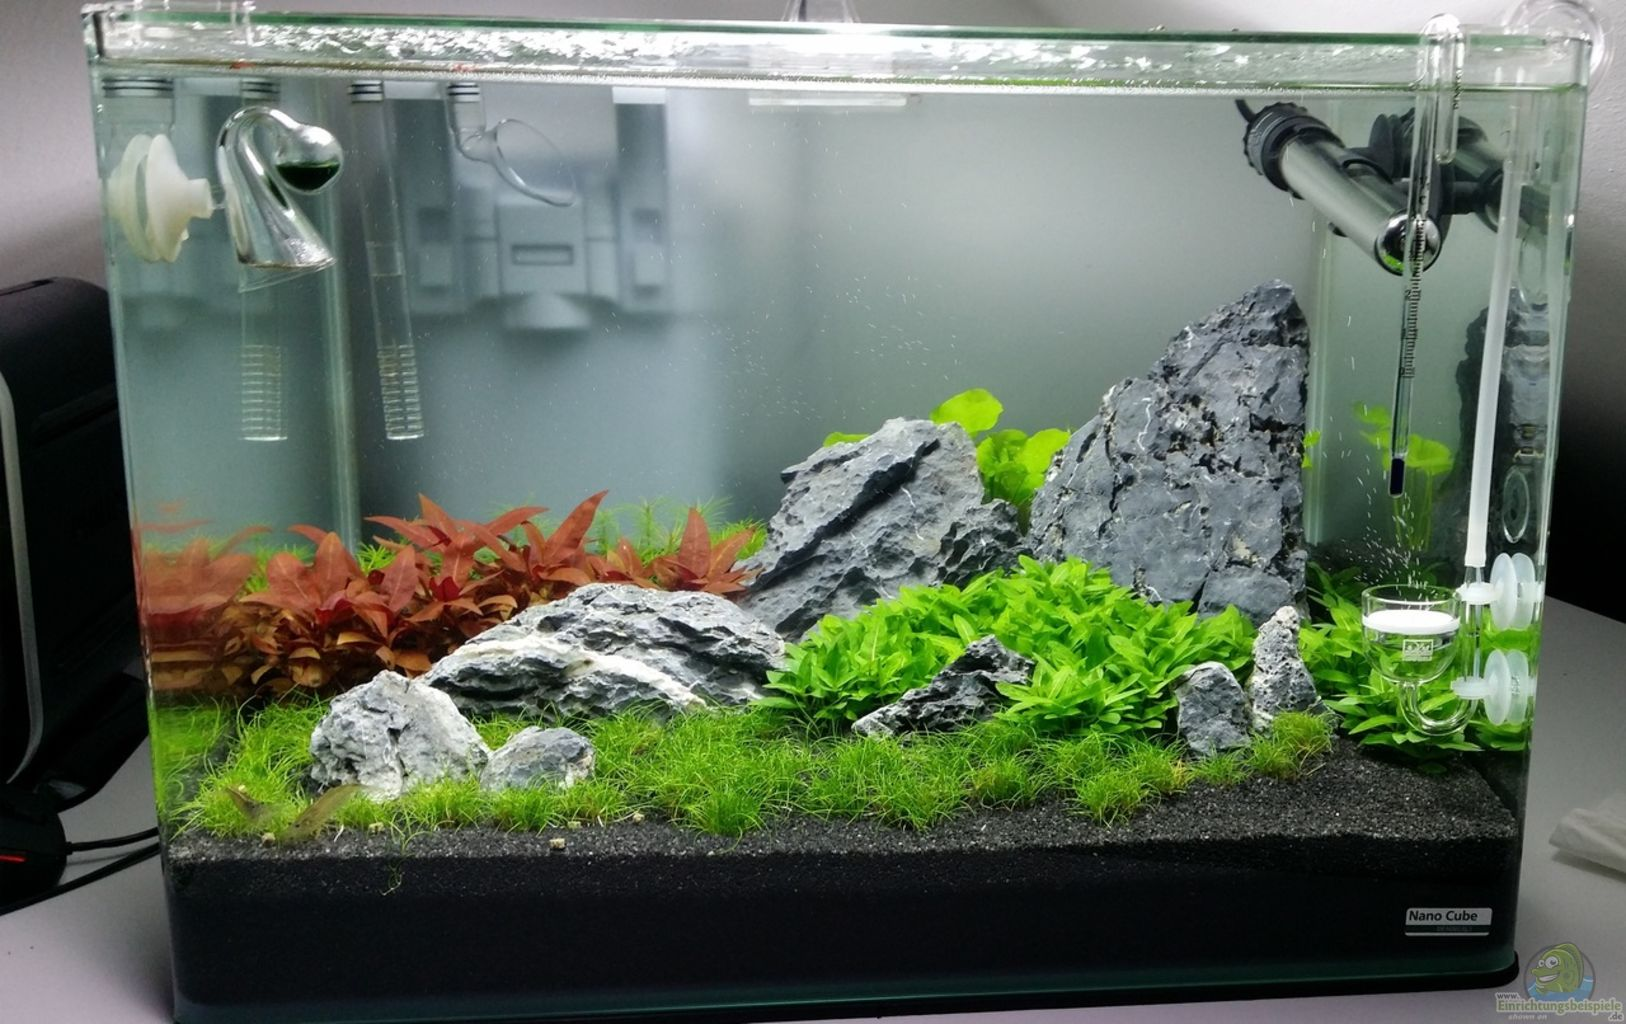 Example No 29477 From The Category Aquascaping